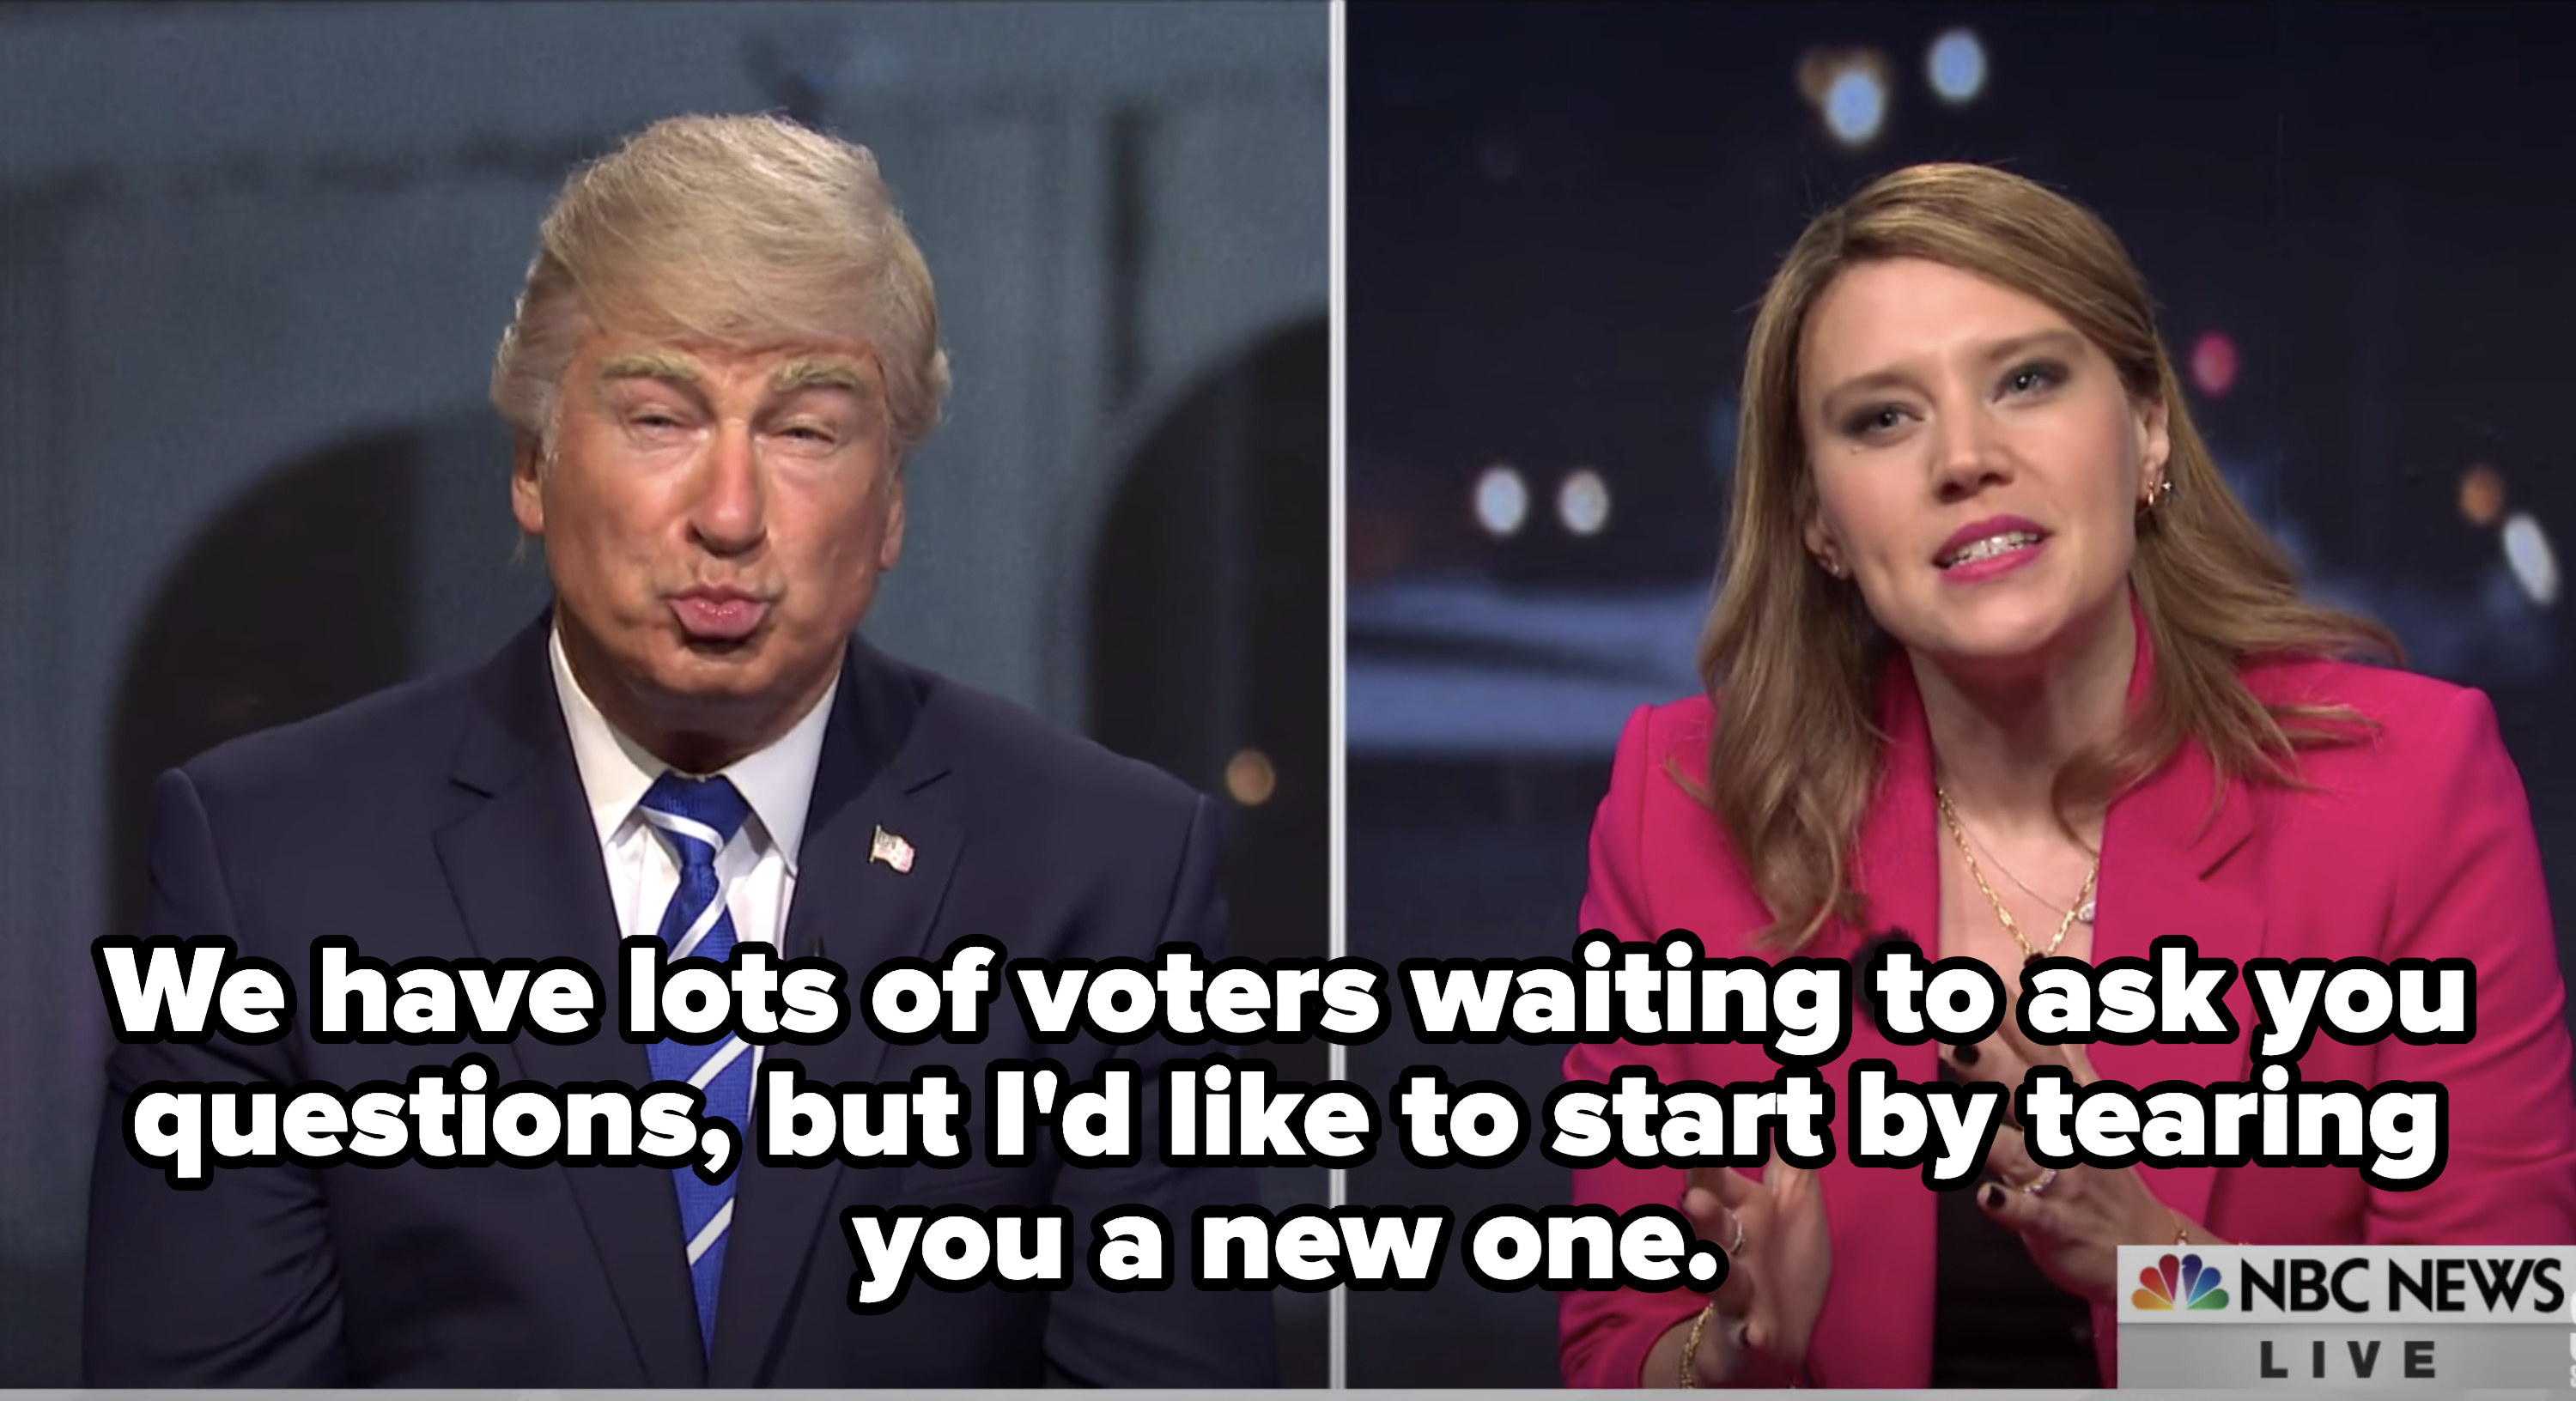 """Savannah saying, """"We have lots of voters waiting to ask you questions, but I'd like to start by tearing you a new one."""""""